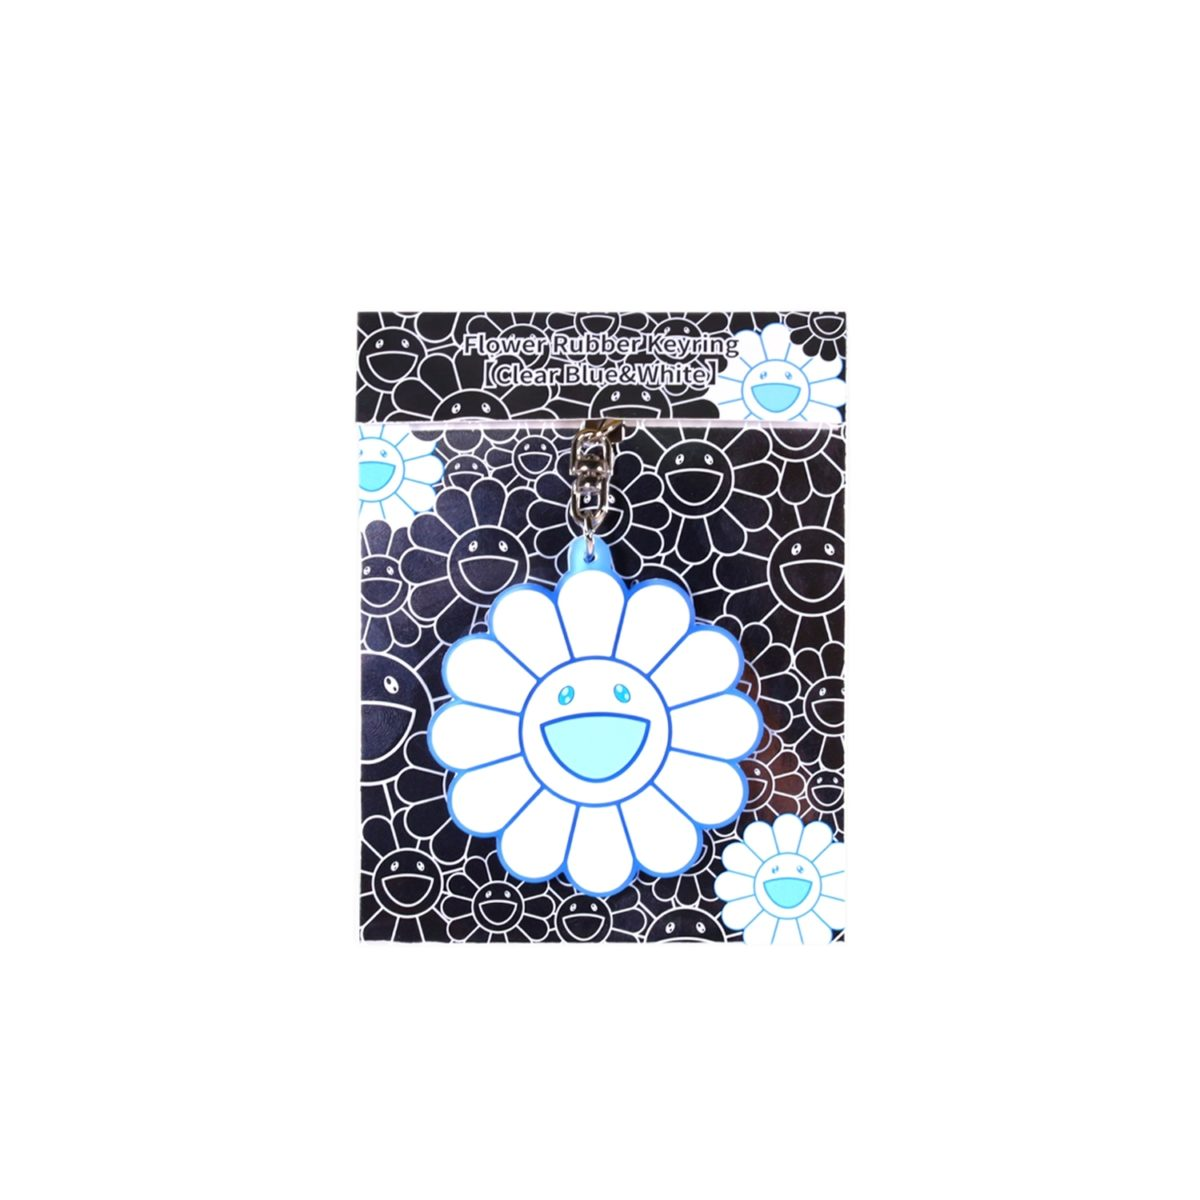 Flower Rubber Keyring (Clear Blue and White)